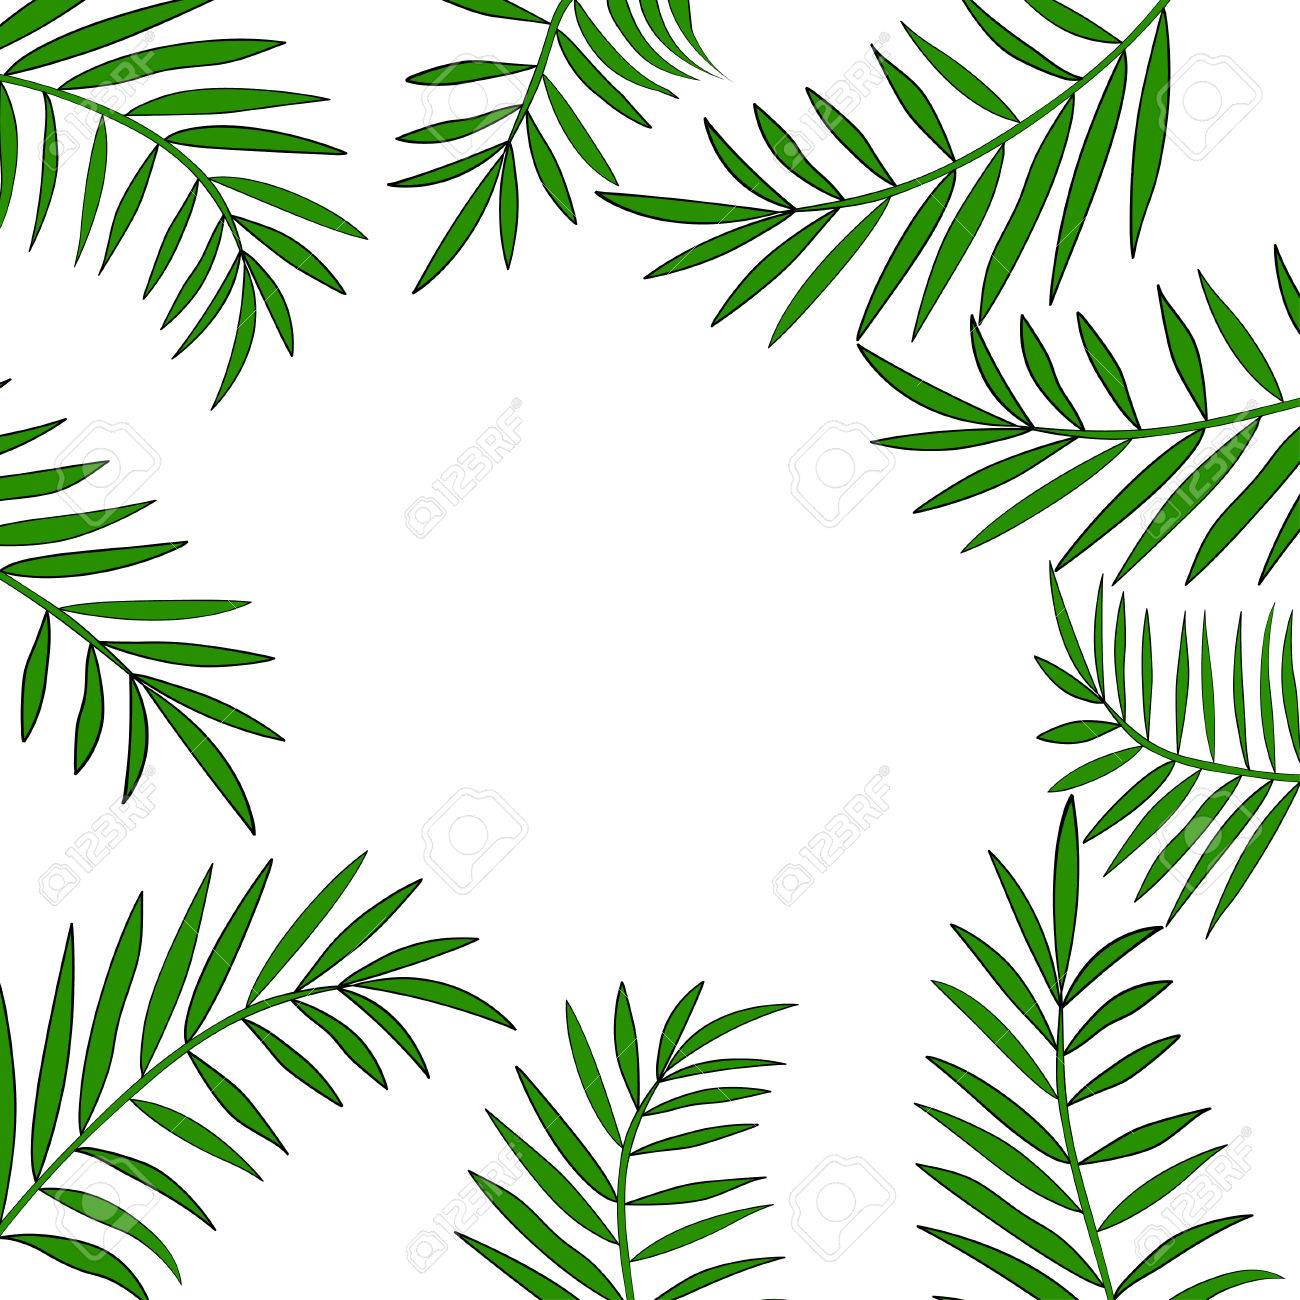 palm tree leaves border 2 royalty free cliparts vectors and stock rh 123rf com  palm tree leaves vector free